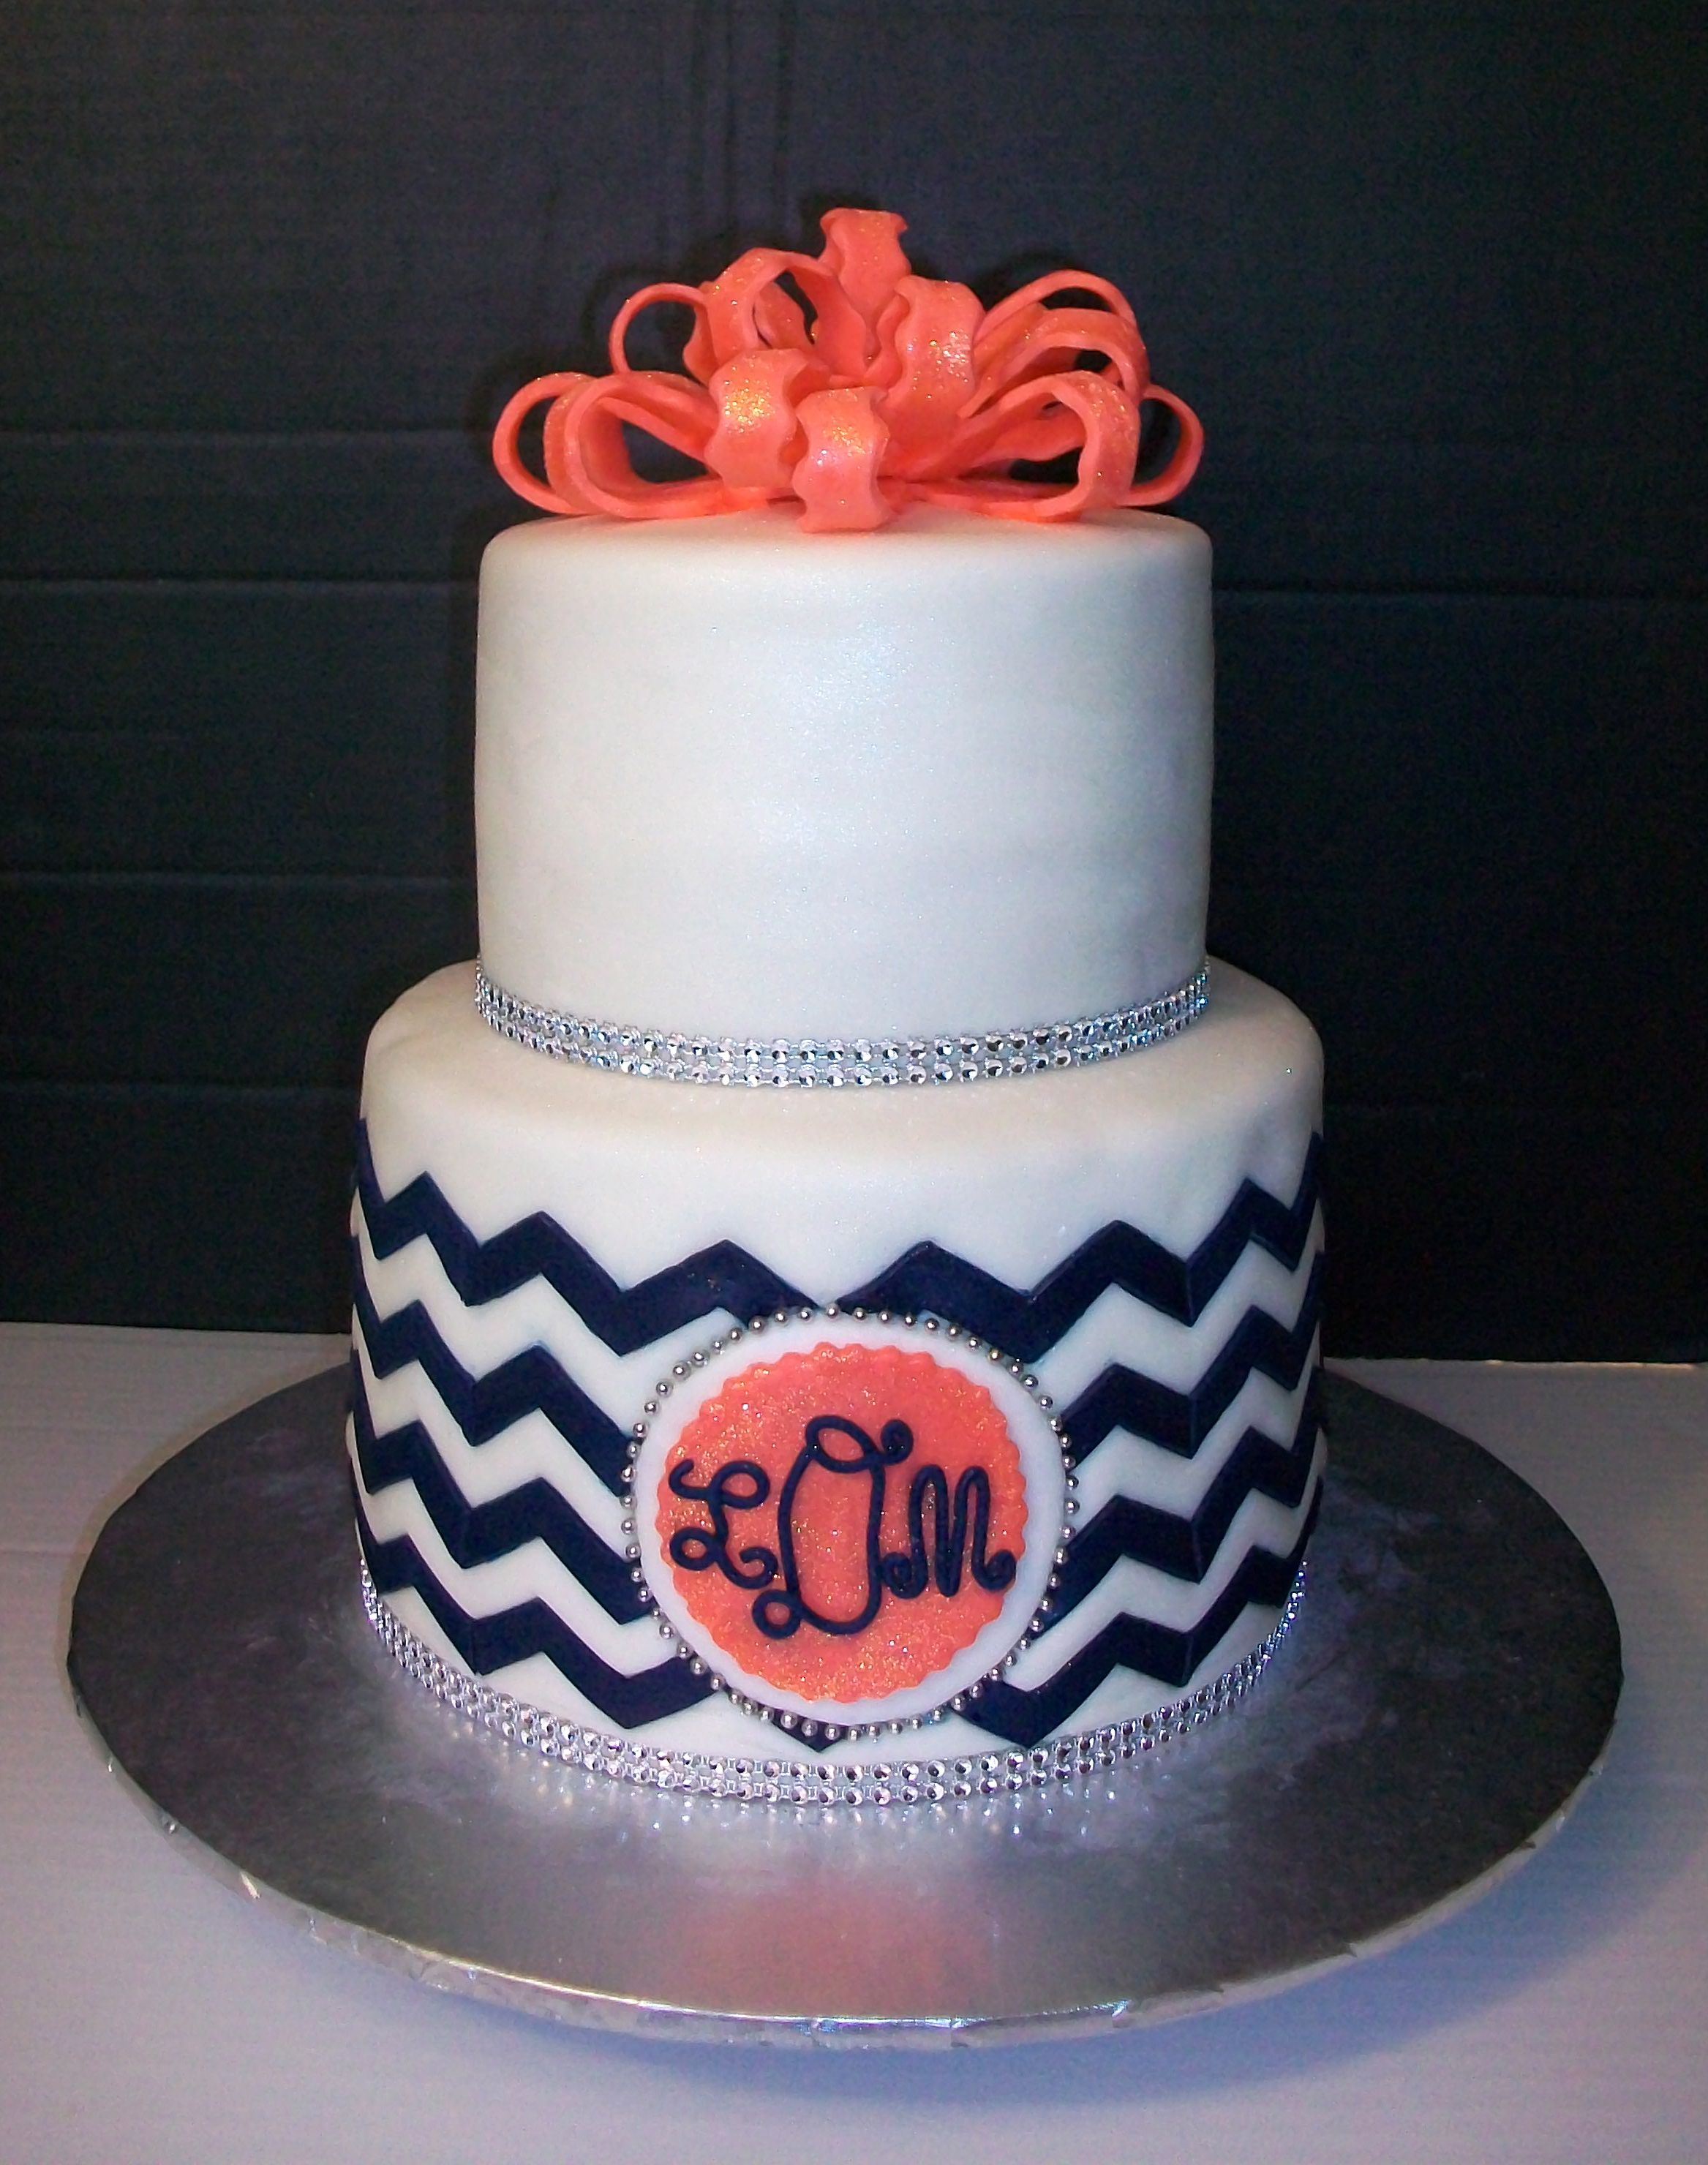 Chevron Monogram Cake Things Ive Made Pinterest Monogram - Monogram birthday cakes